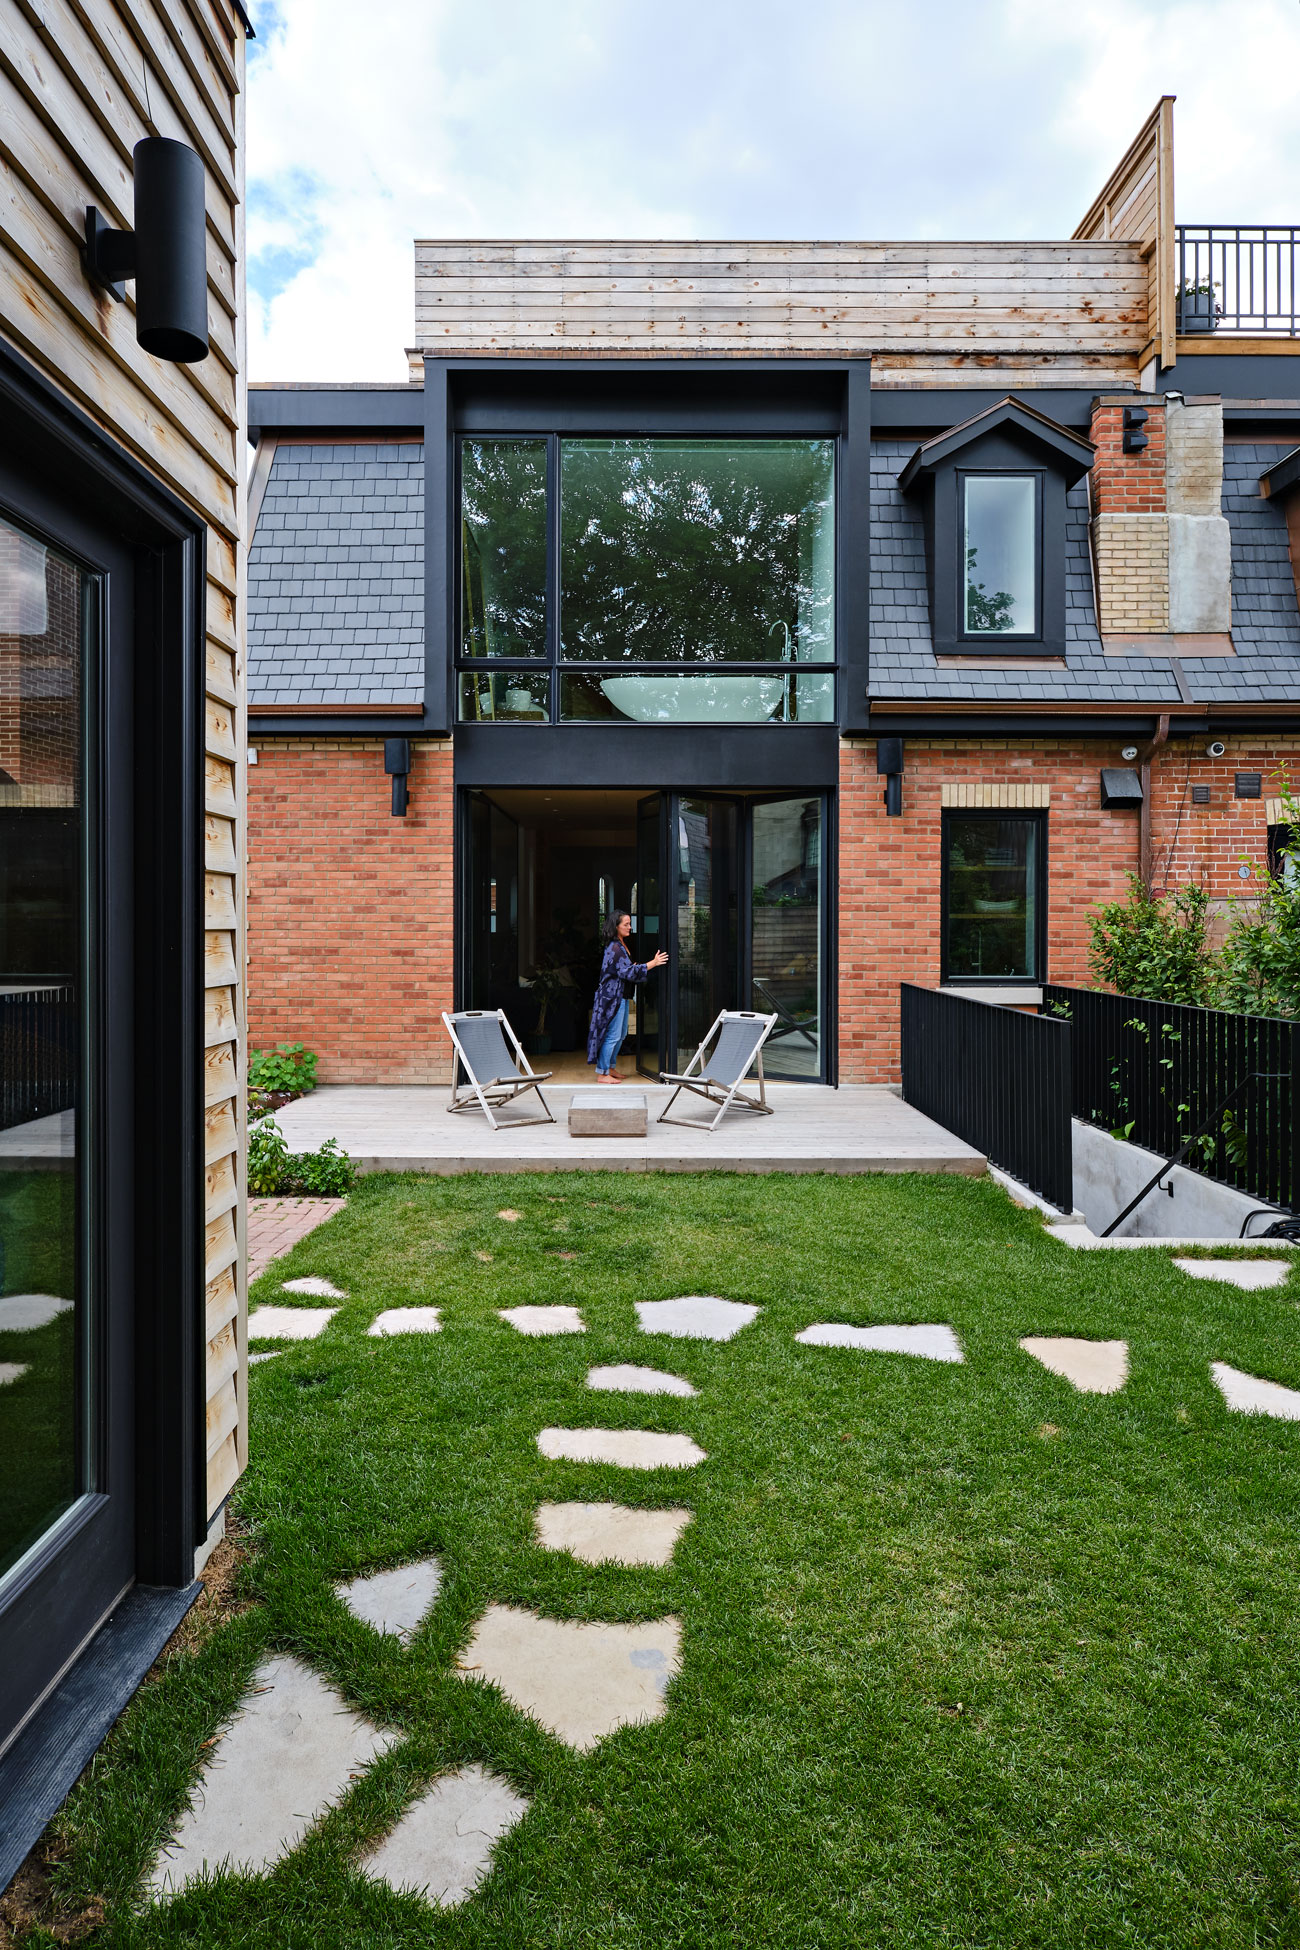 A view from the backyard shows the modern insertions to the heritage listed home by StudioAC.